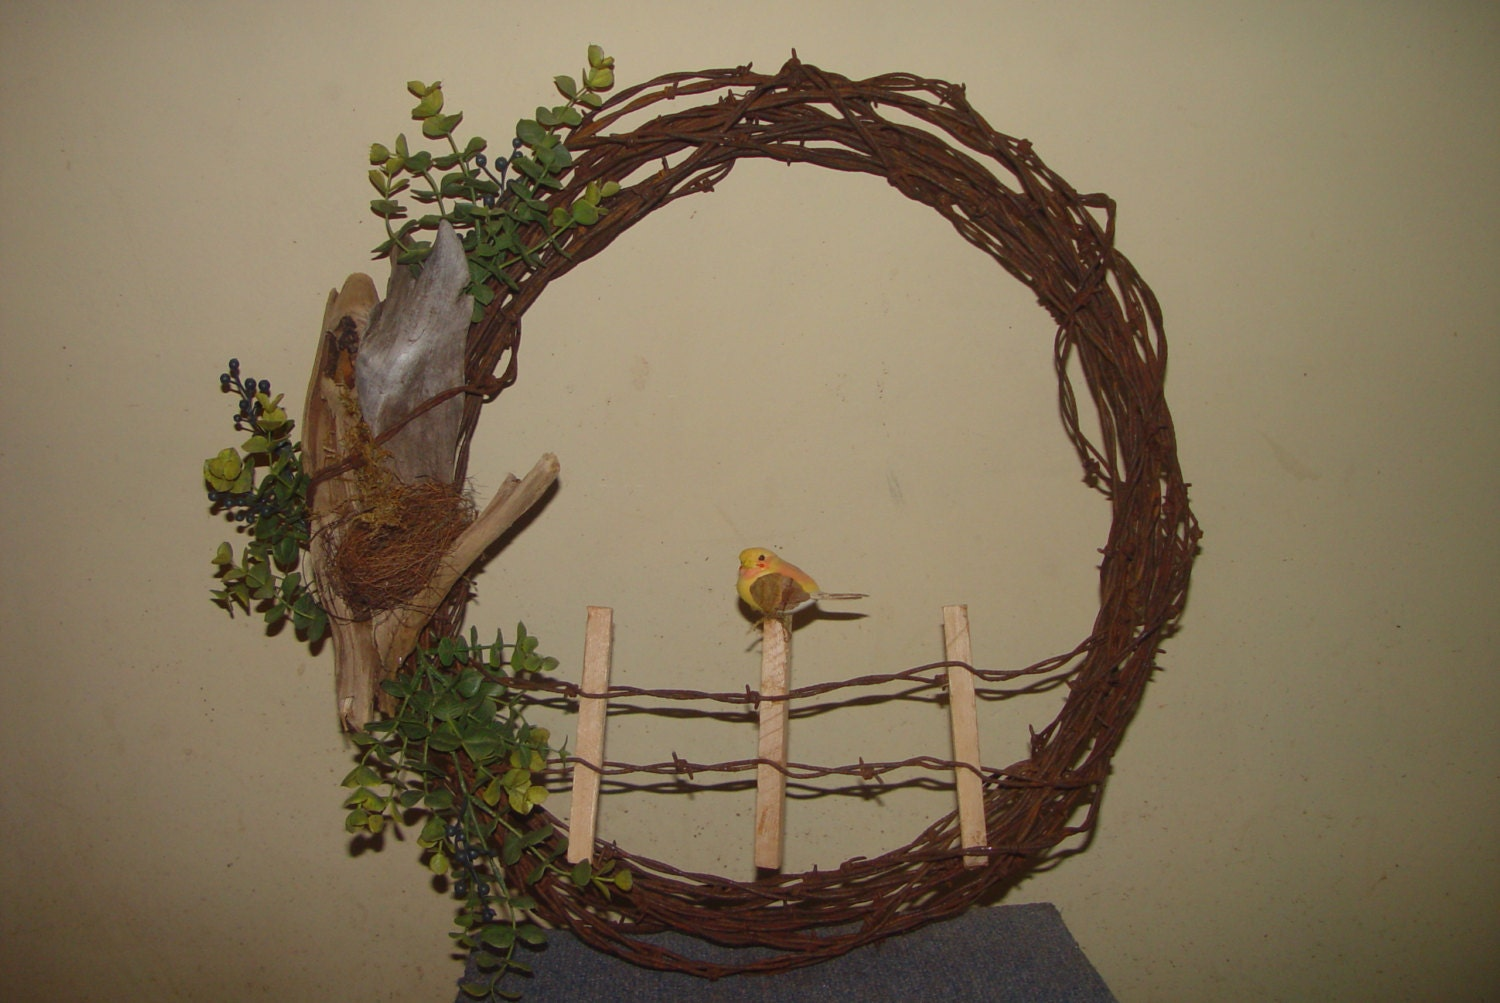 Vintage Barbed Wire Wreath That Reflects The Beauty Of